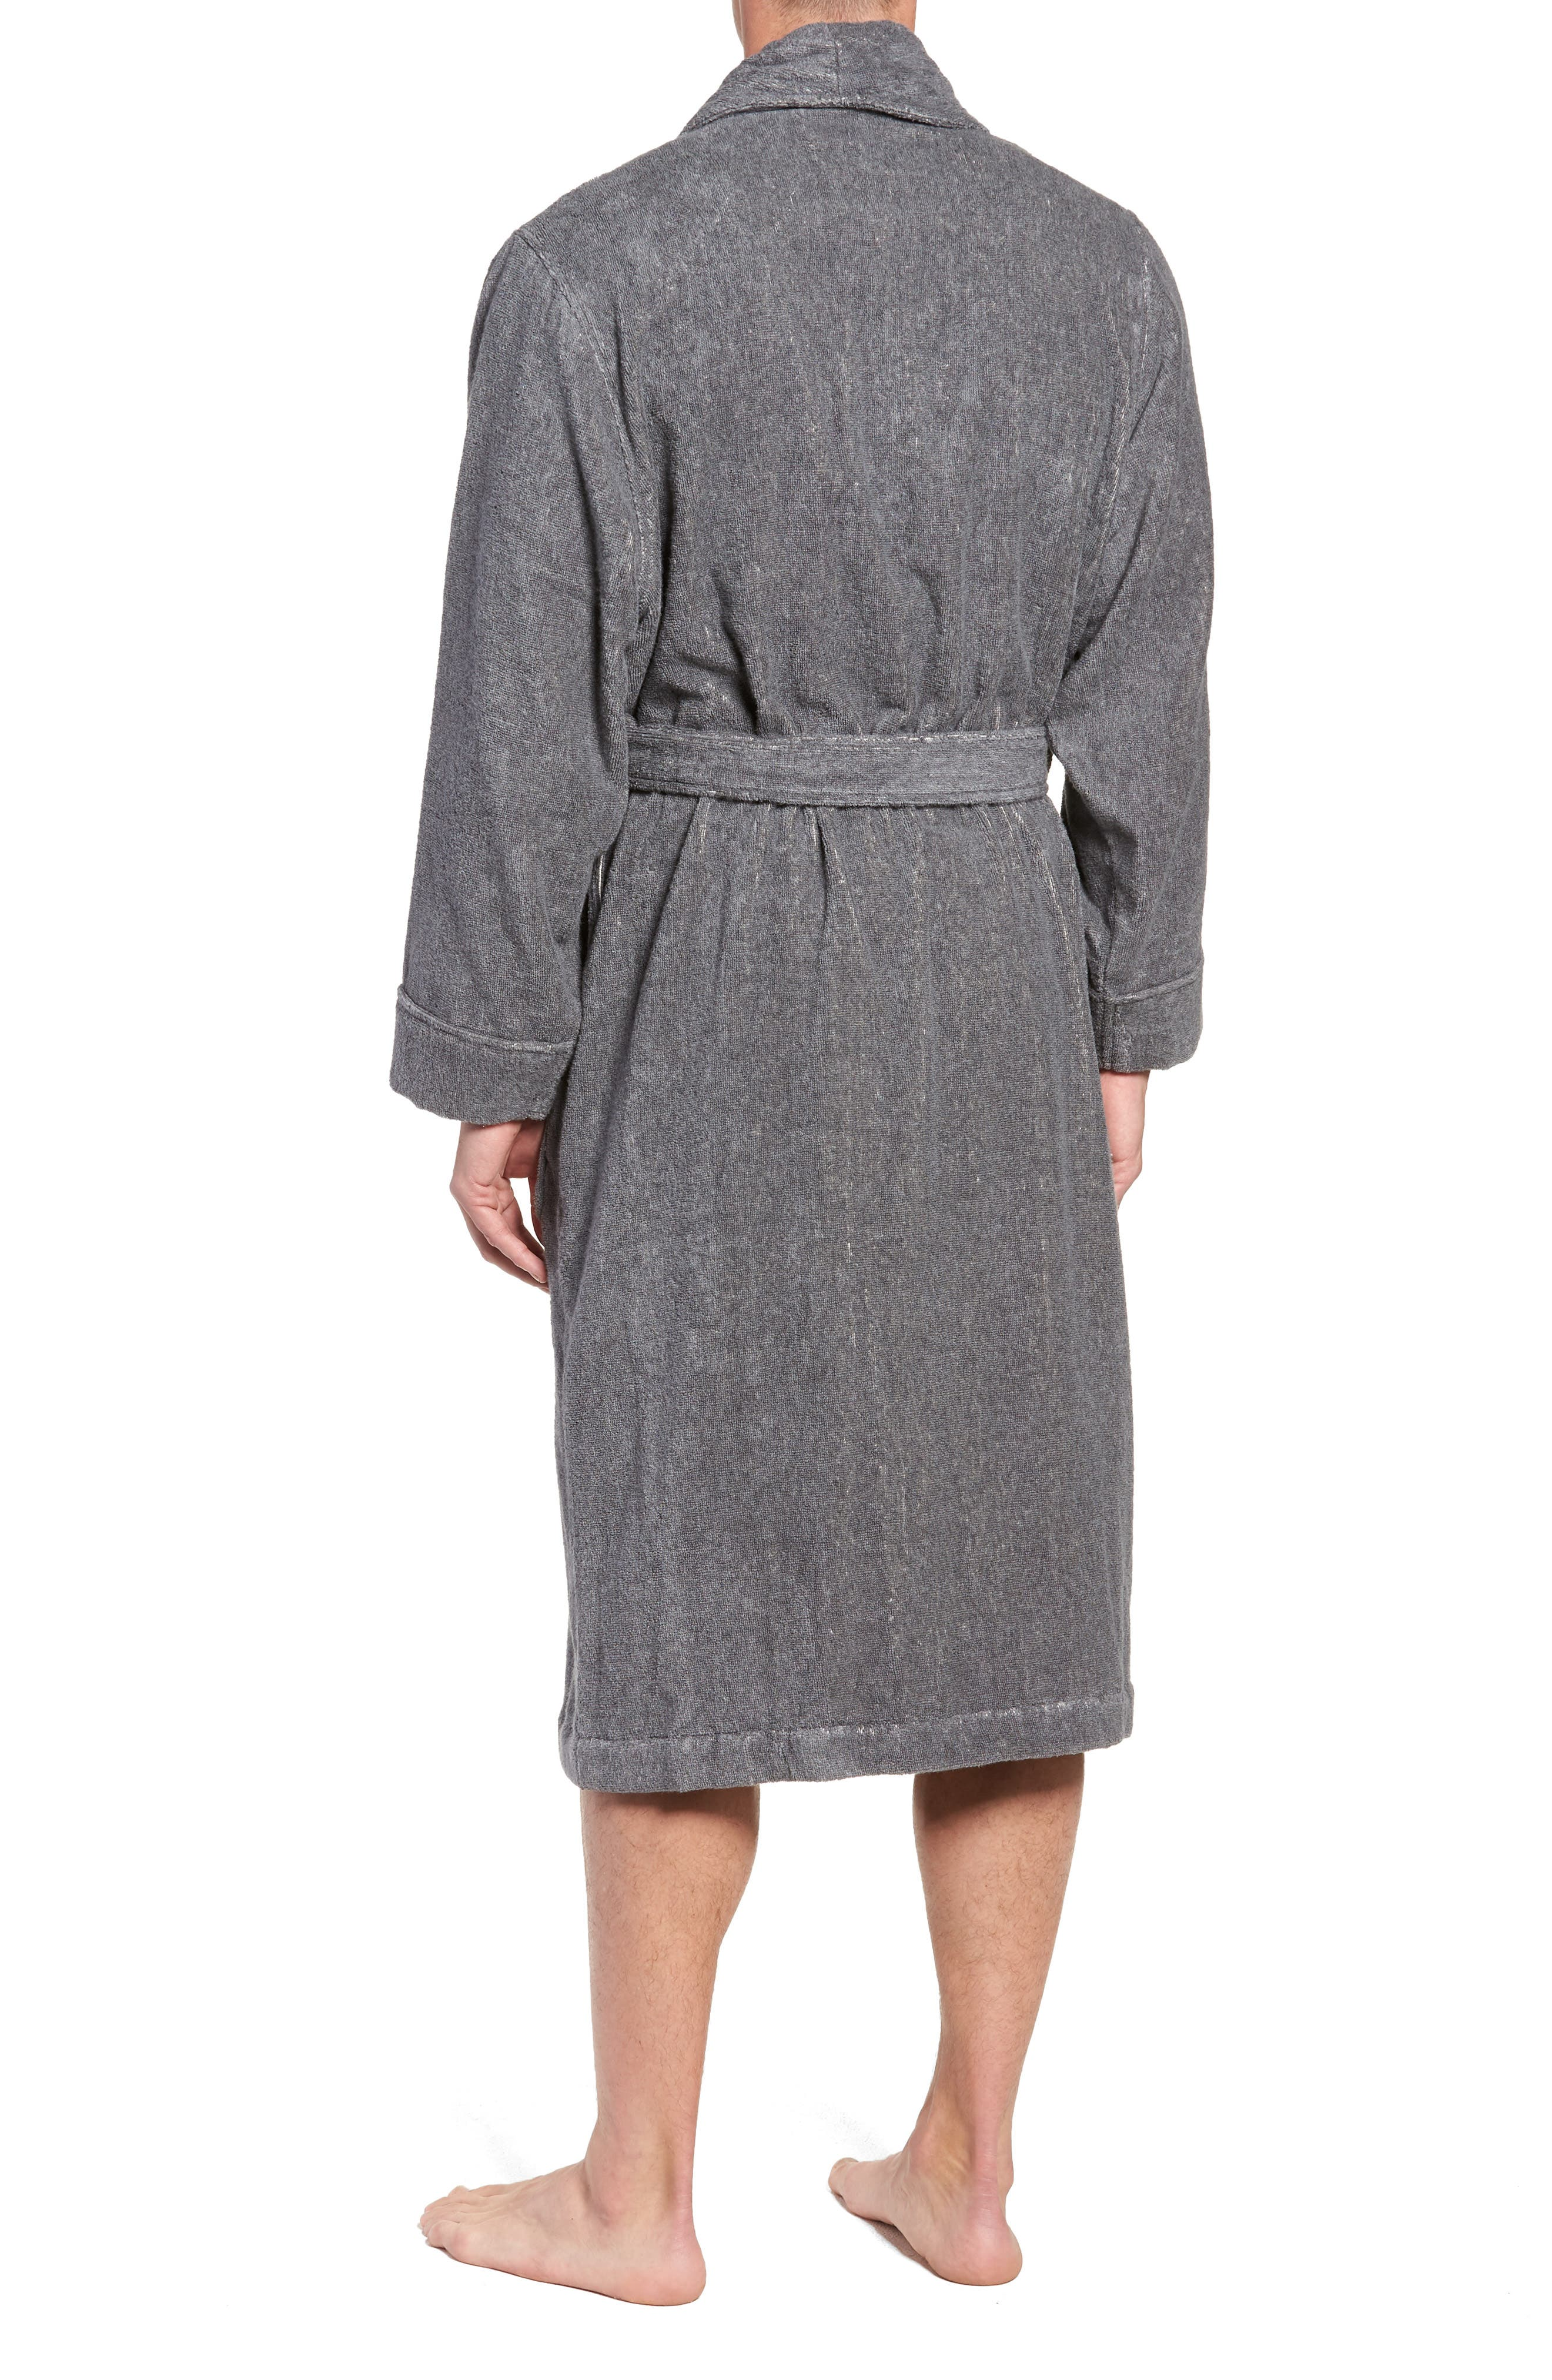 Hydro Cotton Terry Robe,                             Alternate thumbnail 2, color,                             022